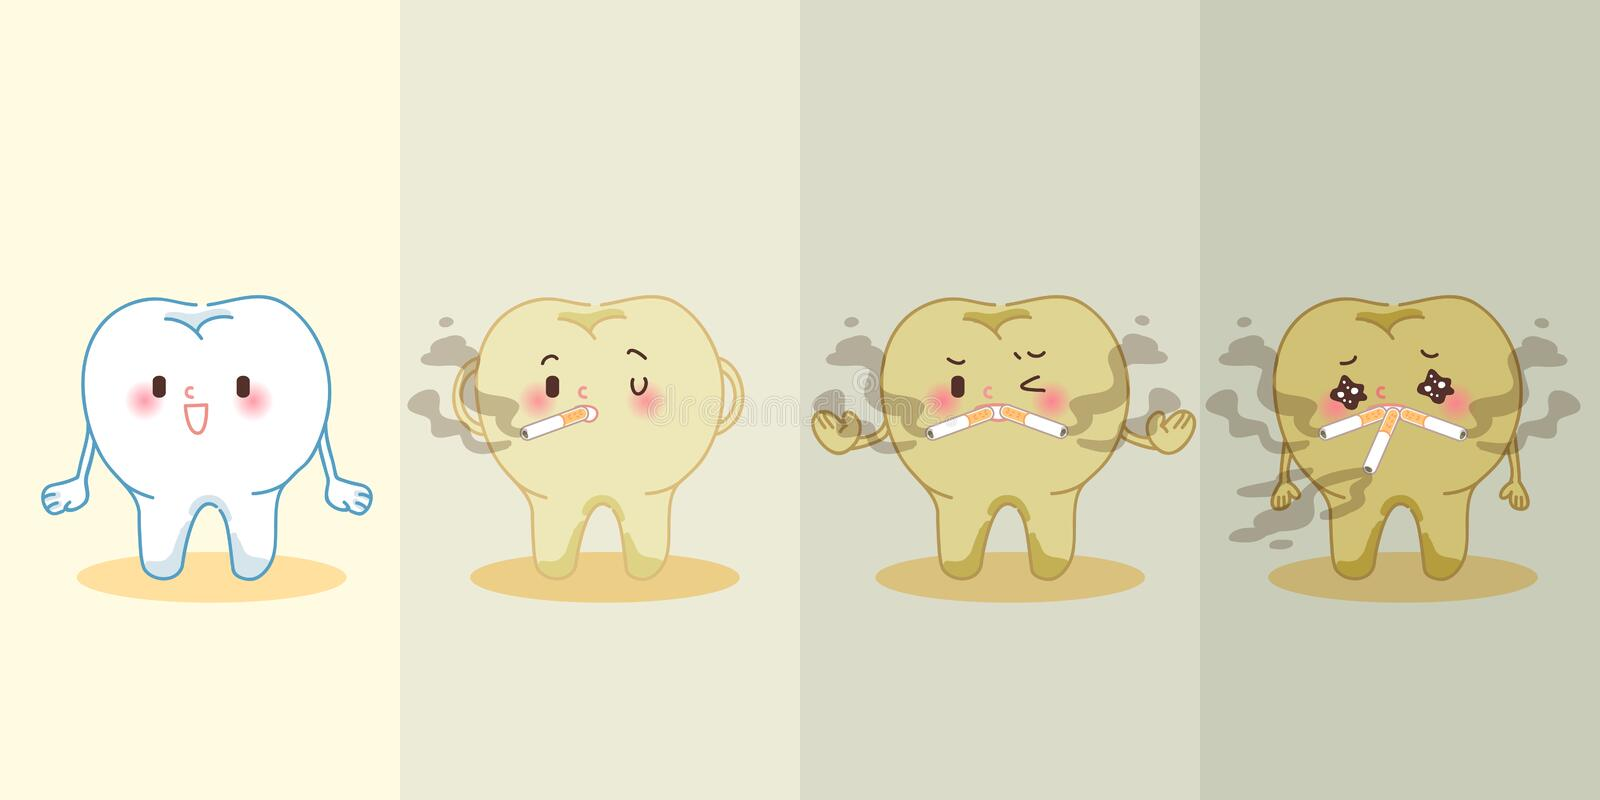 Zębu dymienie before and after ilustracji